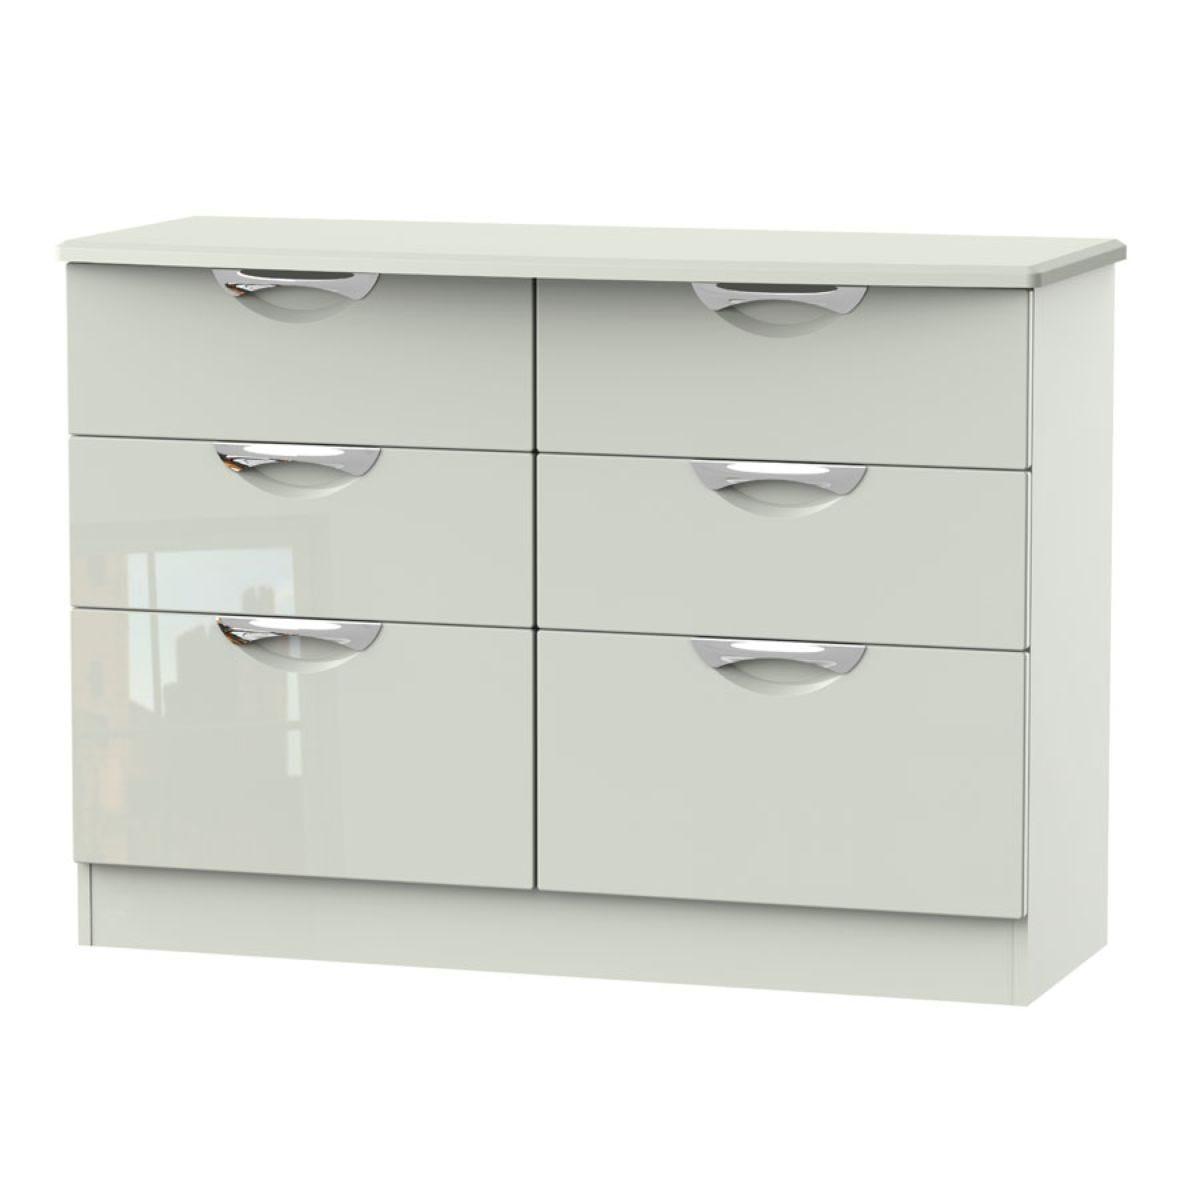 Indices 6-Drawer Double Chest of Drawers - White/Grey